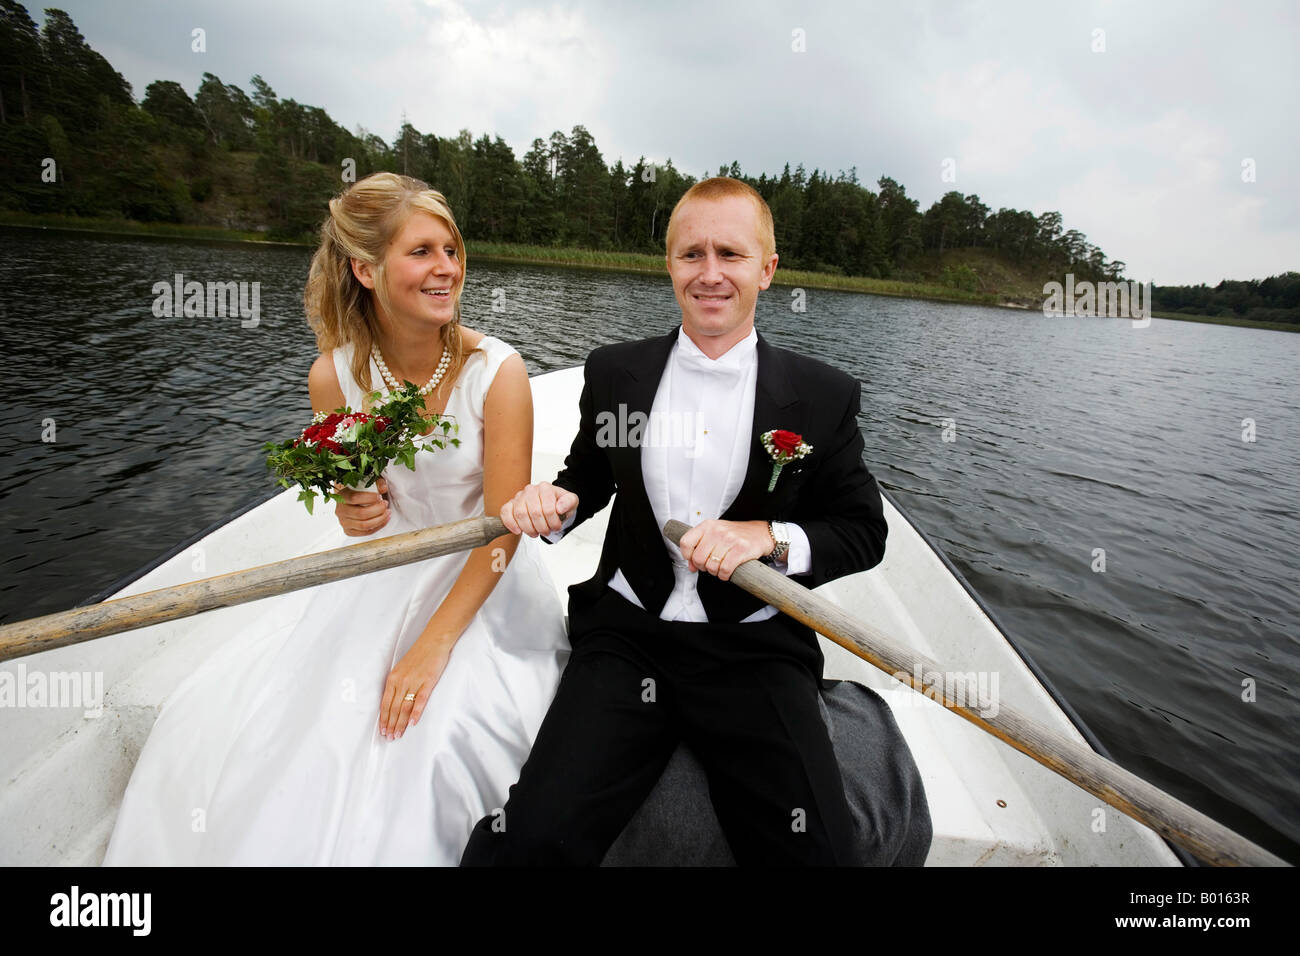 wedding couple in a rowing boat - Stock Image